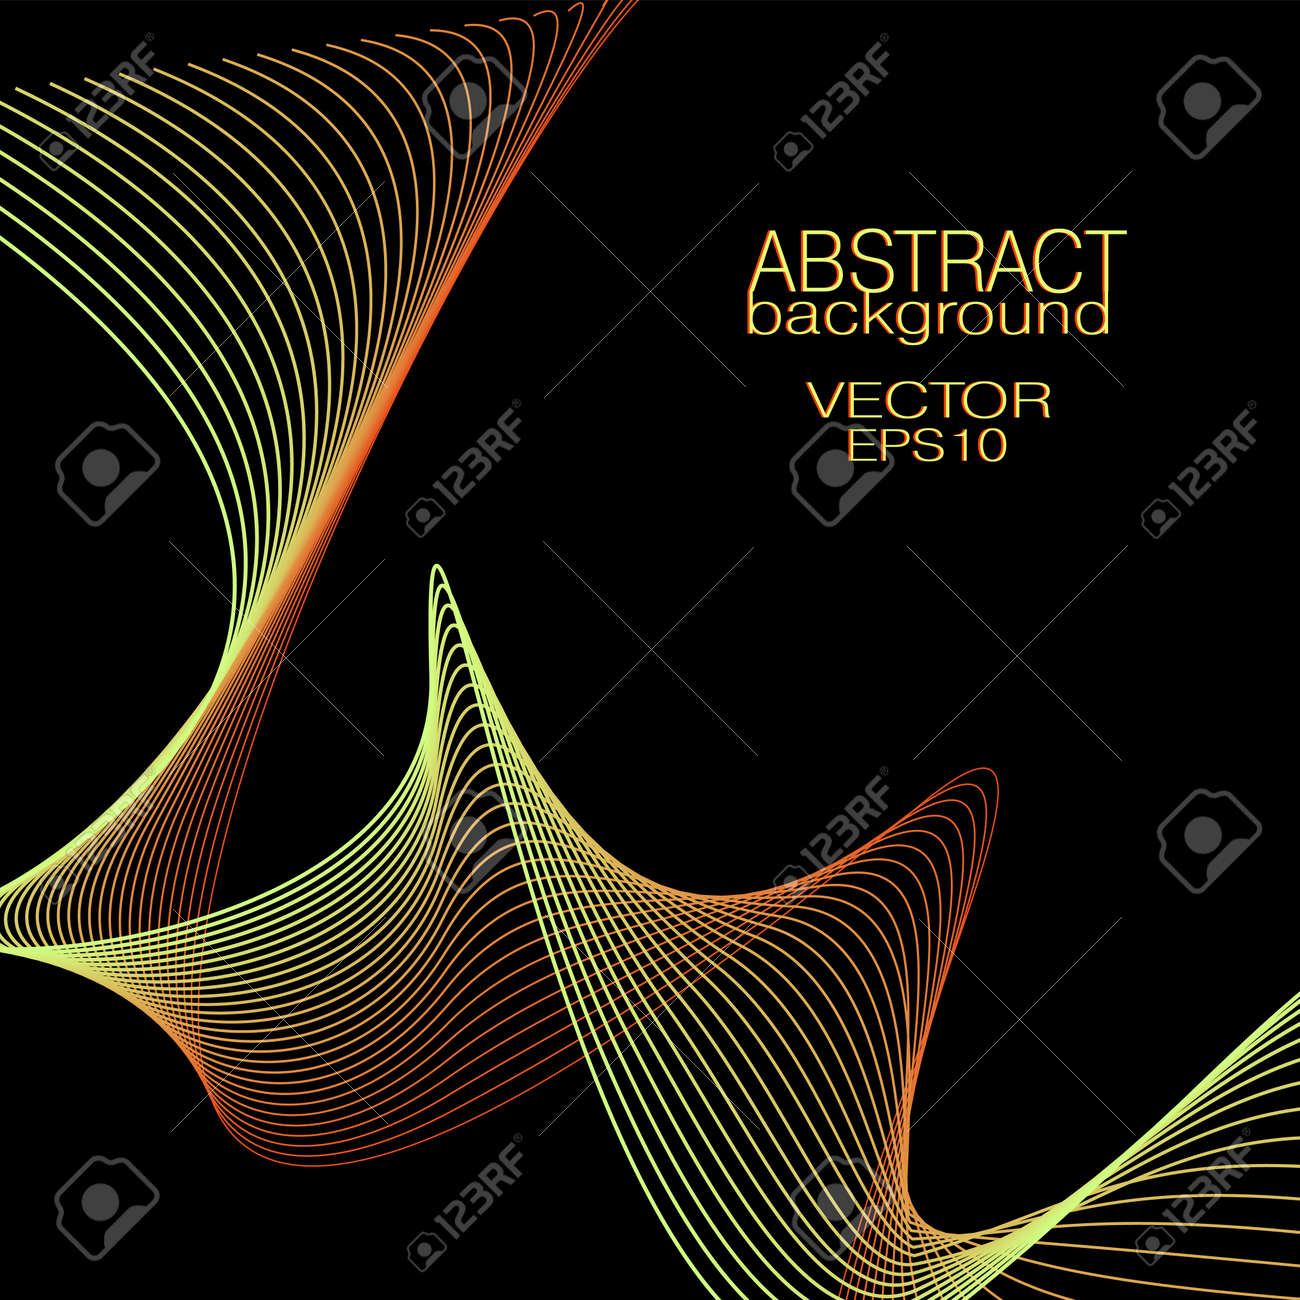 Shiny yellow, red squiggly curves. Vector wavy lines. Abstract wave pattern. Black background. Bright colored gradient. Technology design element for landing page, banner, poster, leaflet, flyer, website. EPS10 illustration - 167097435